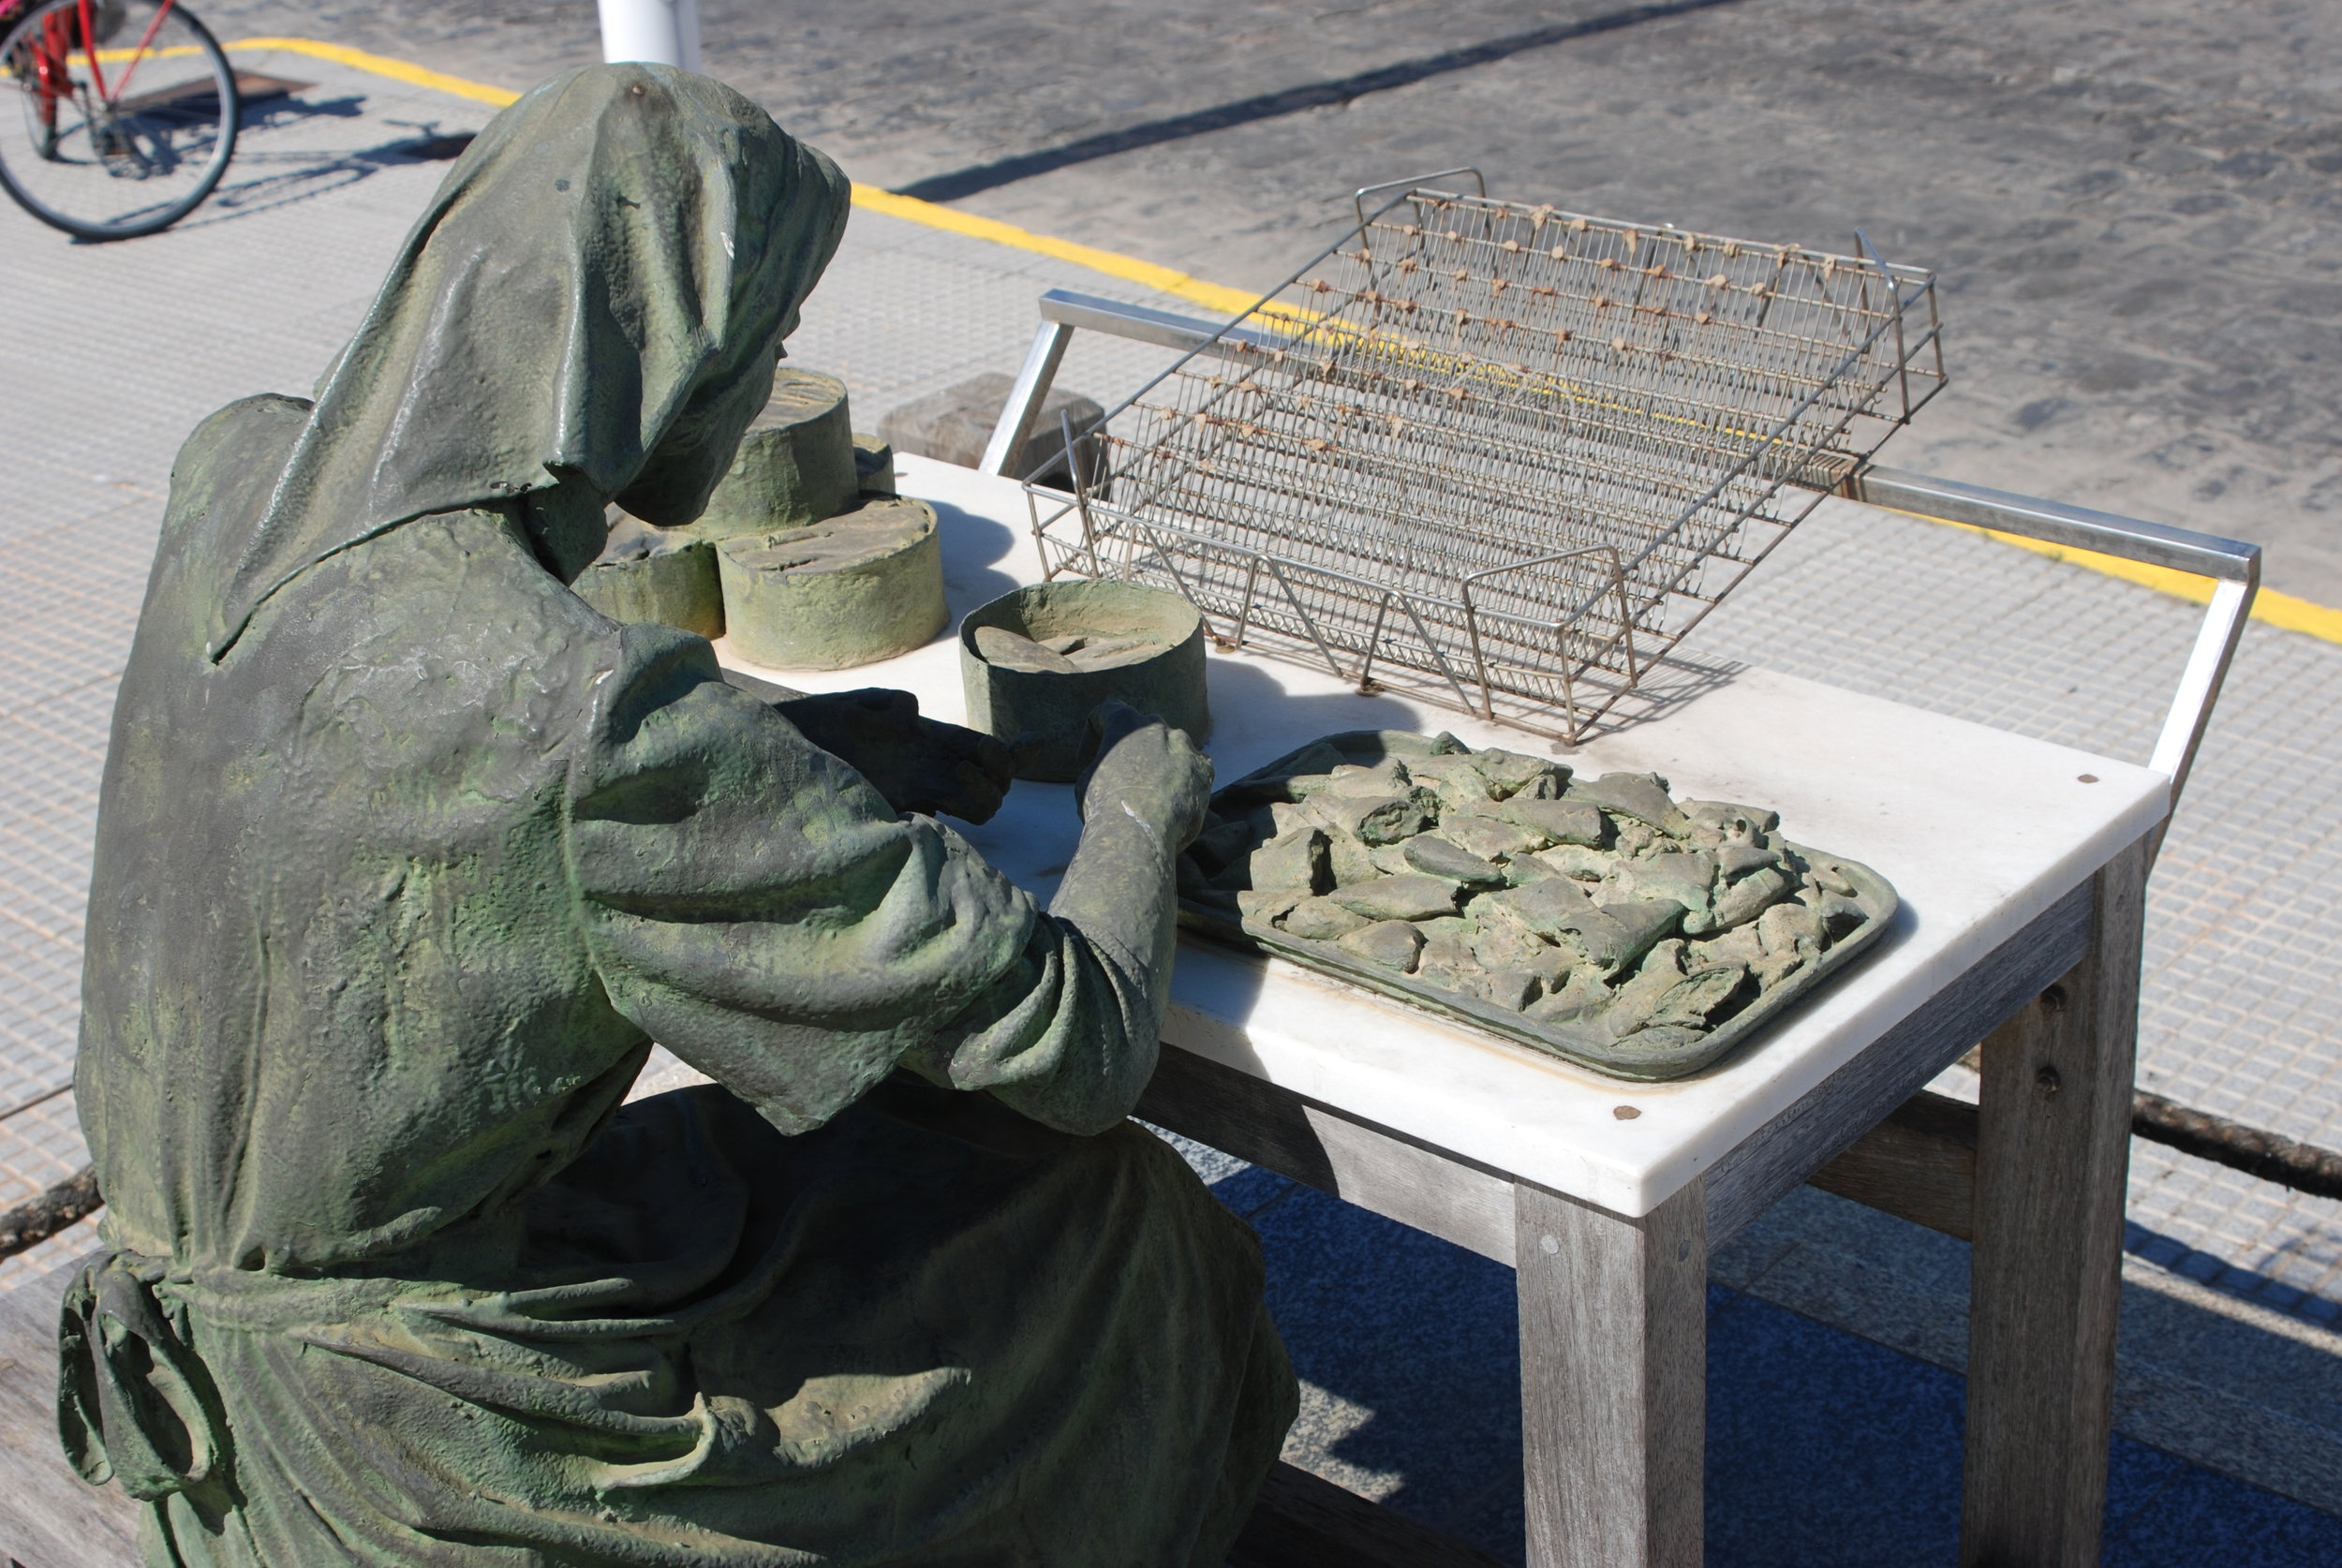 This monument of The Fish Preserving Lady, shows a a woman filleting fish in the Southern Spanish tradition still practiced today.